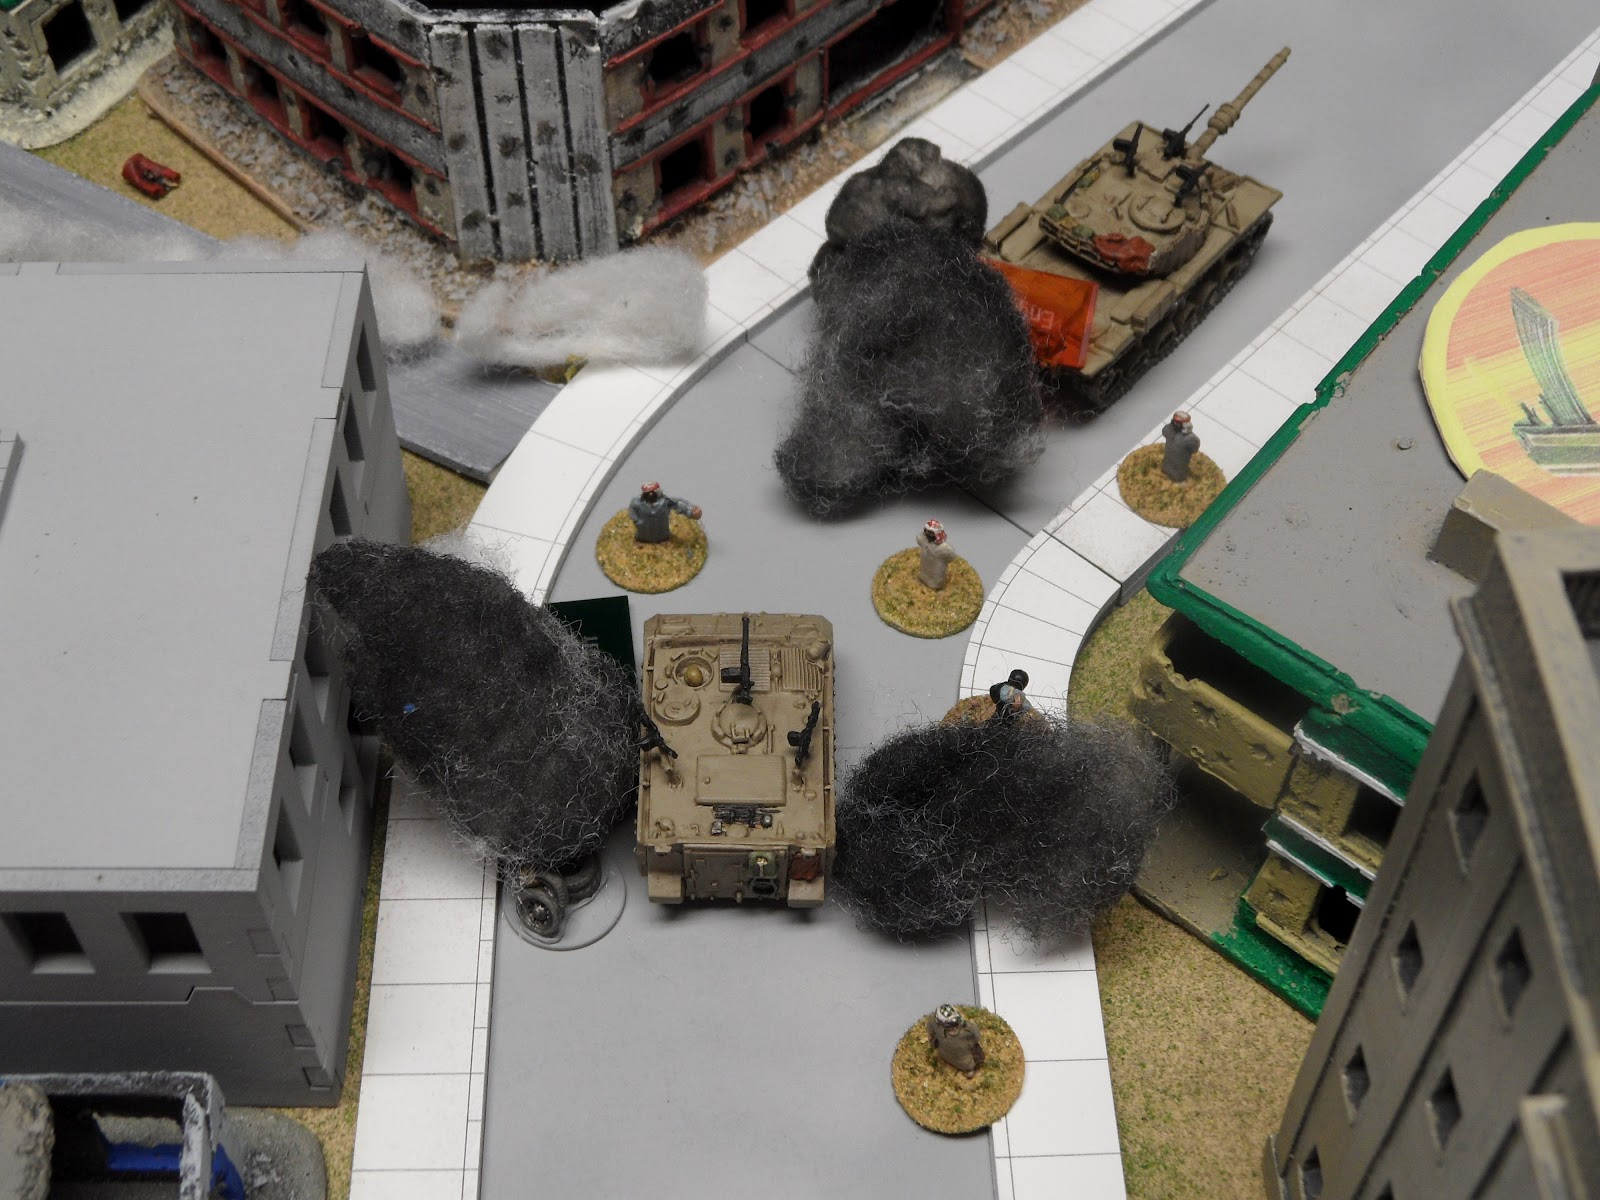 These civilians: They stand in streets, block tanks, and run into the middle of firefights. Seriously...